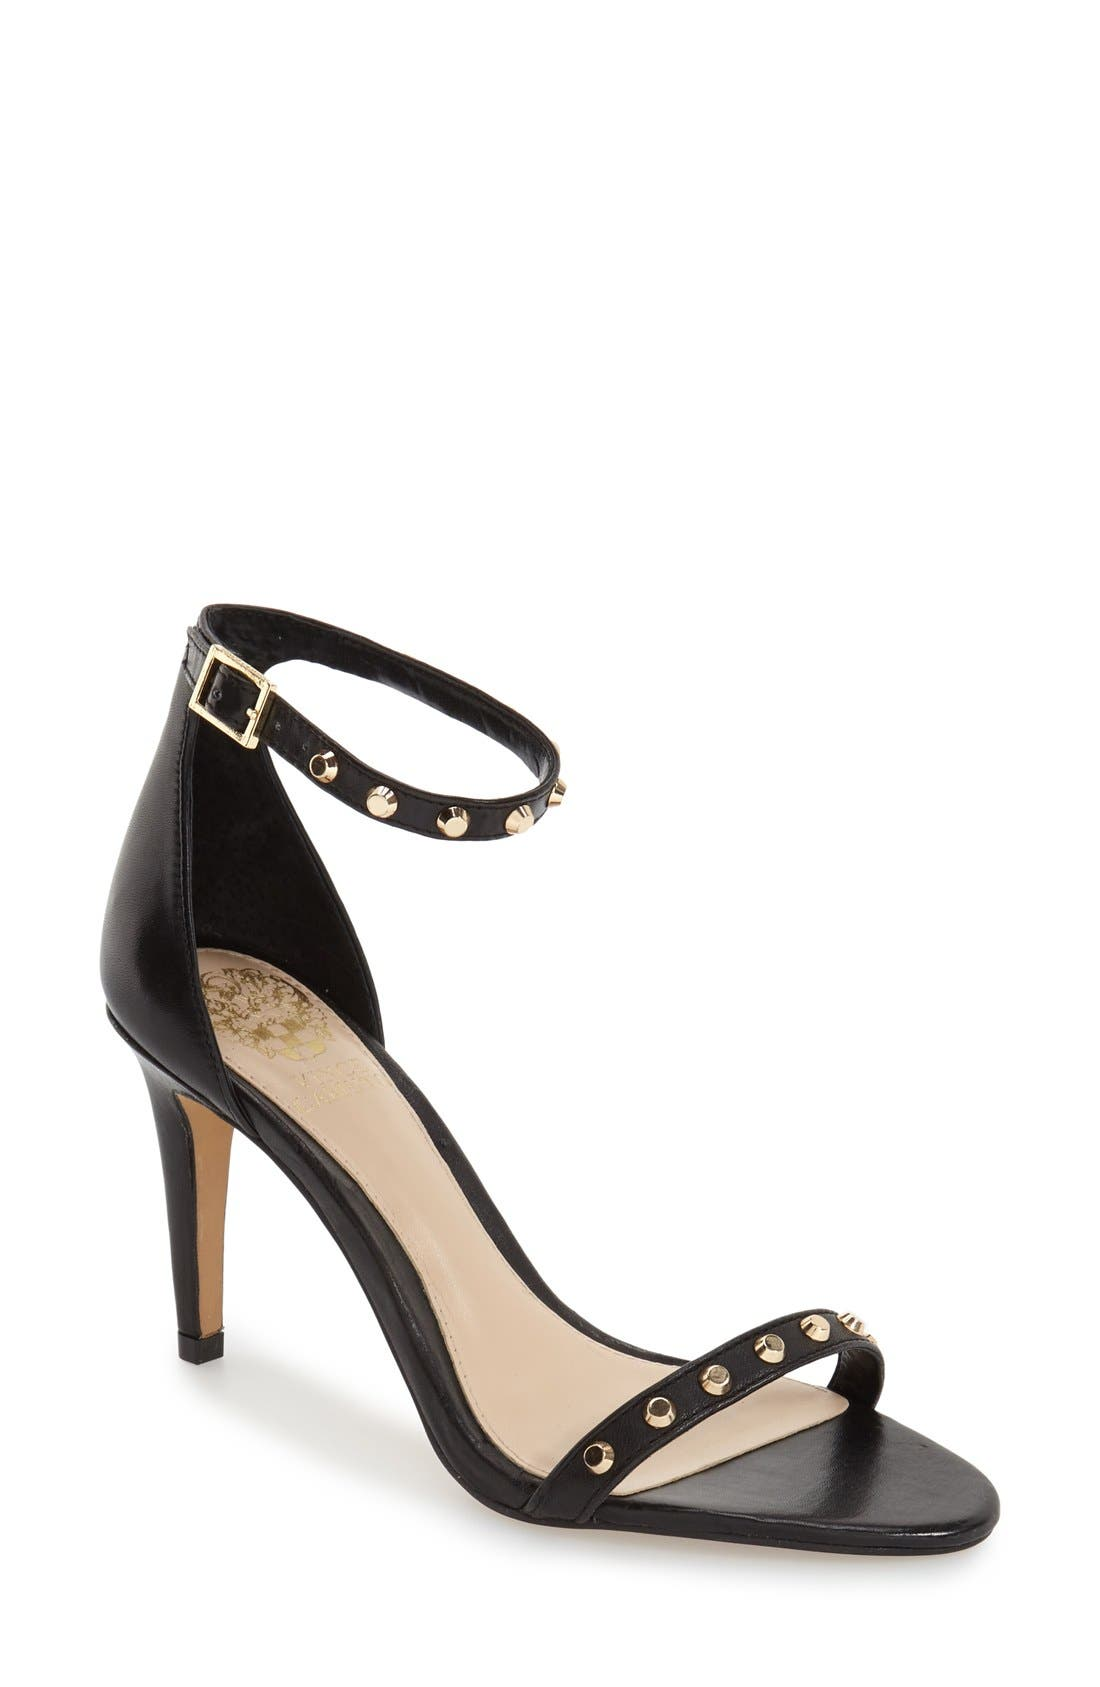 'Cassandy' Studded Sandal,                             Main thumbnail 1, color,                             Black Napa Leather